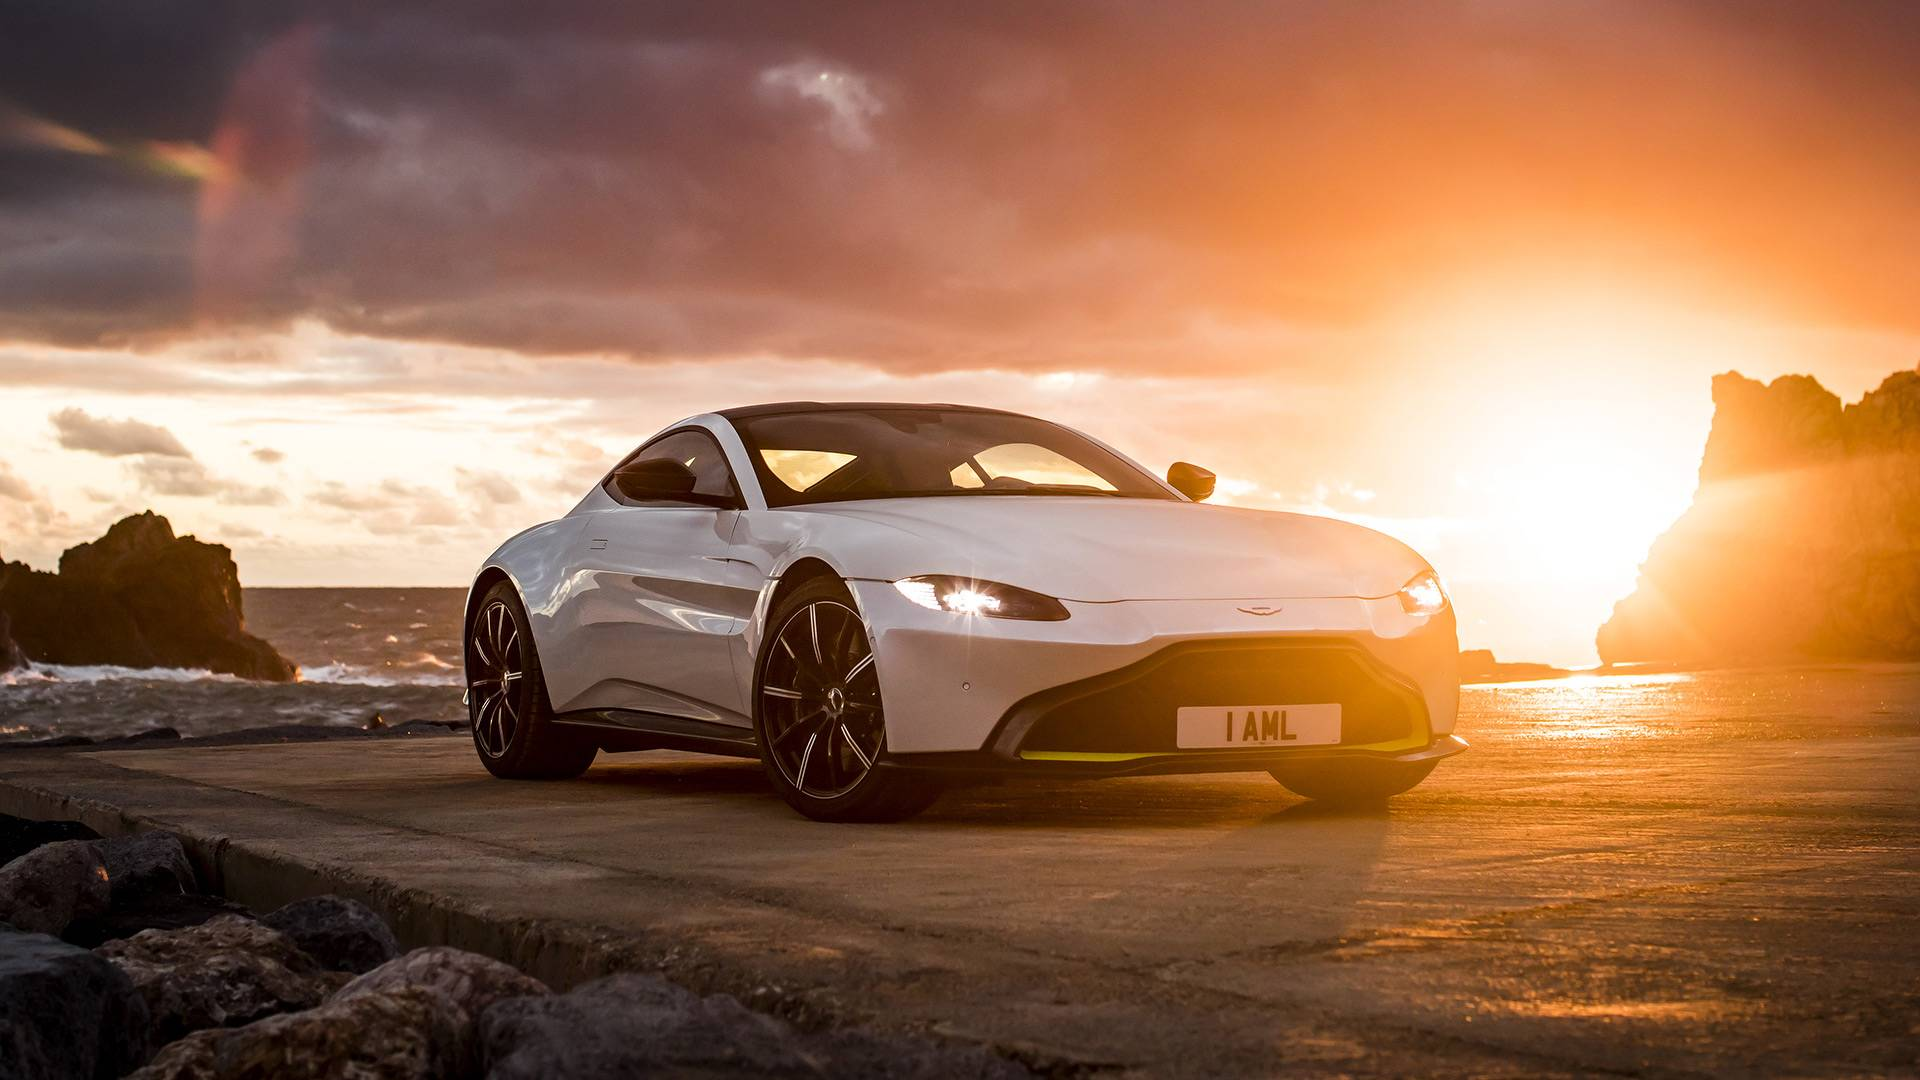 2019 aston martin vantage first drive: fun in no sun